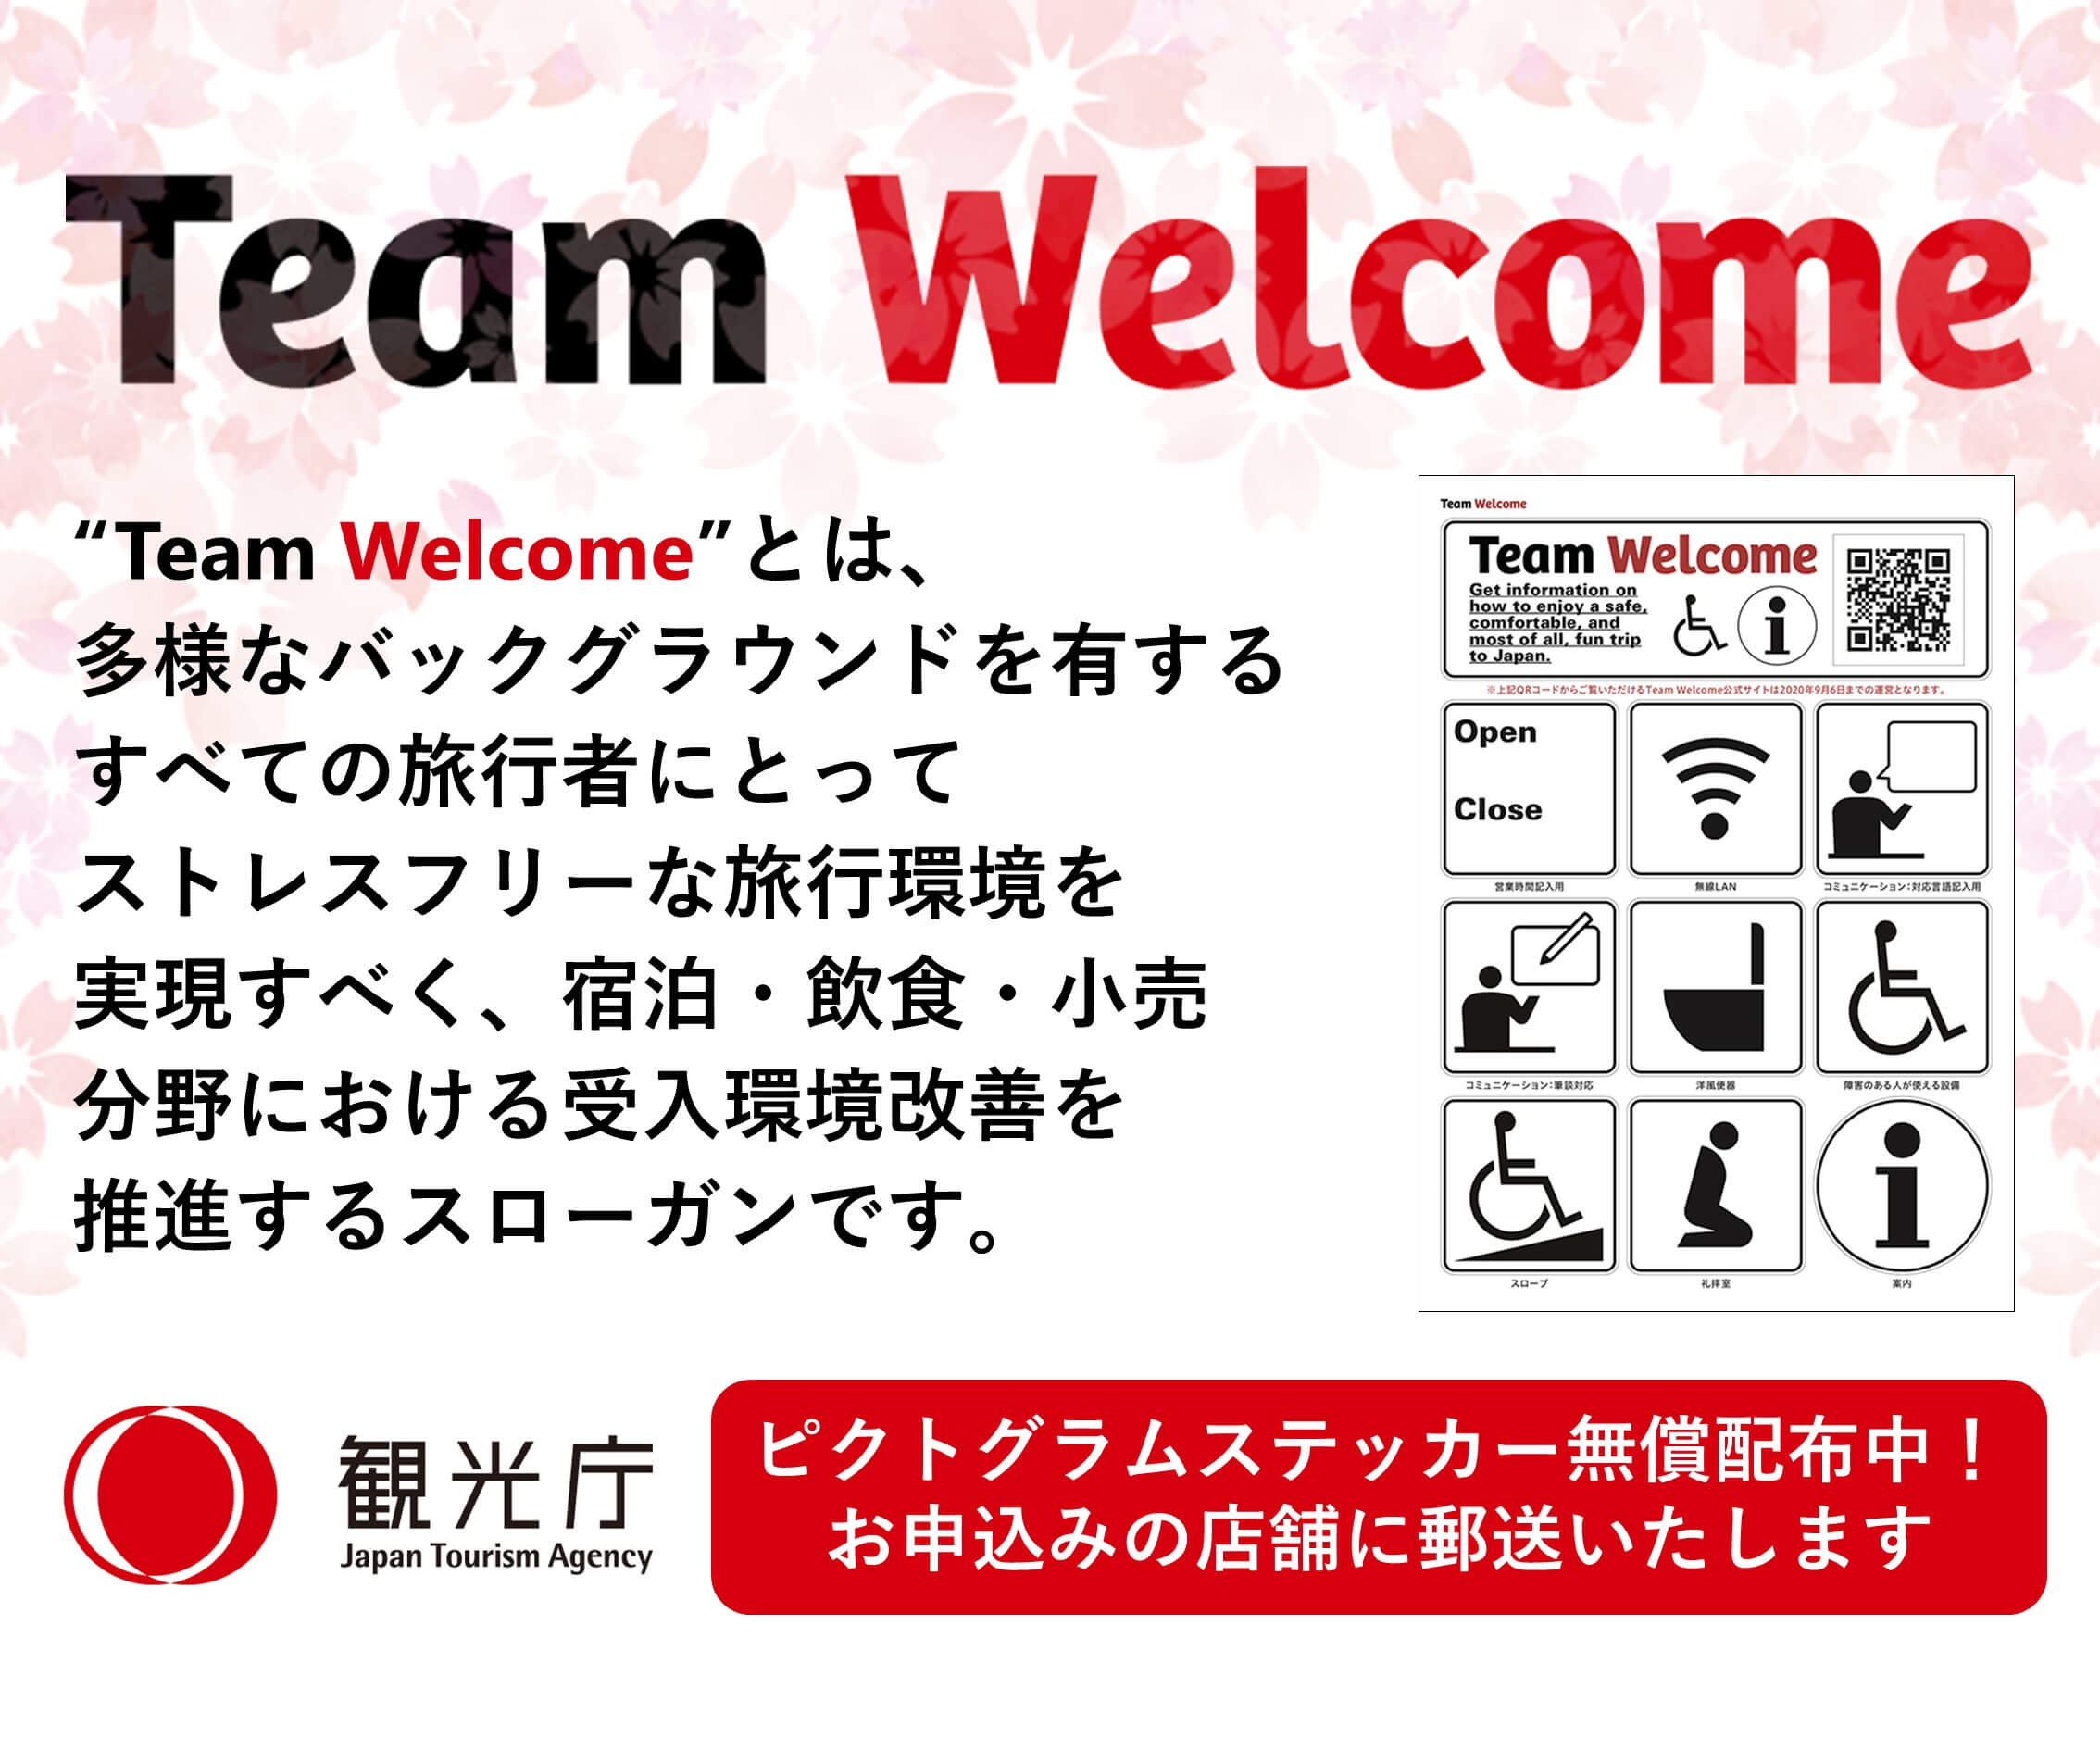 Team Welcome